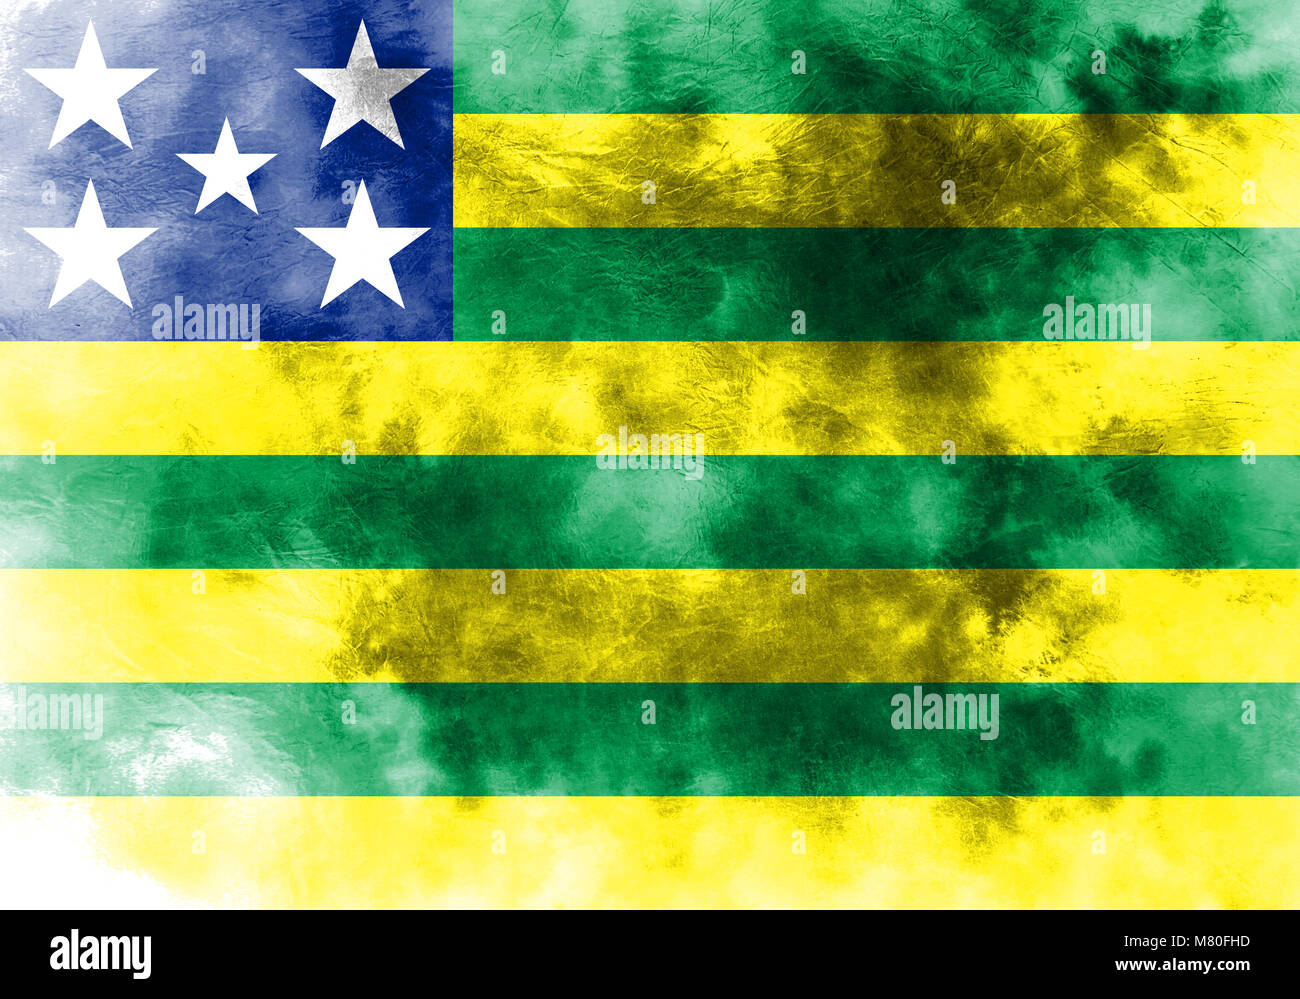 Goias grunge flag, state of Brazil - Stock Image